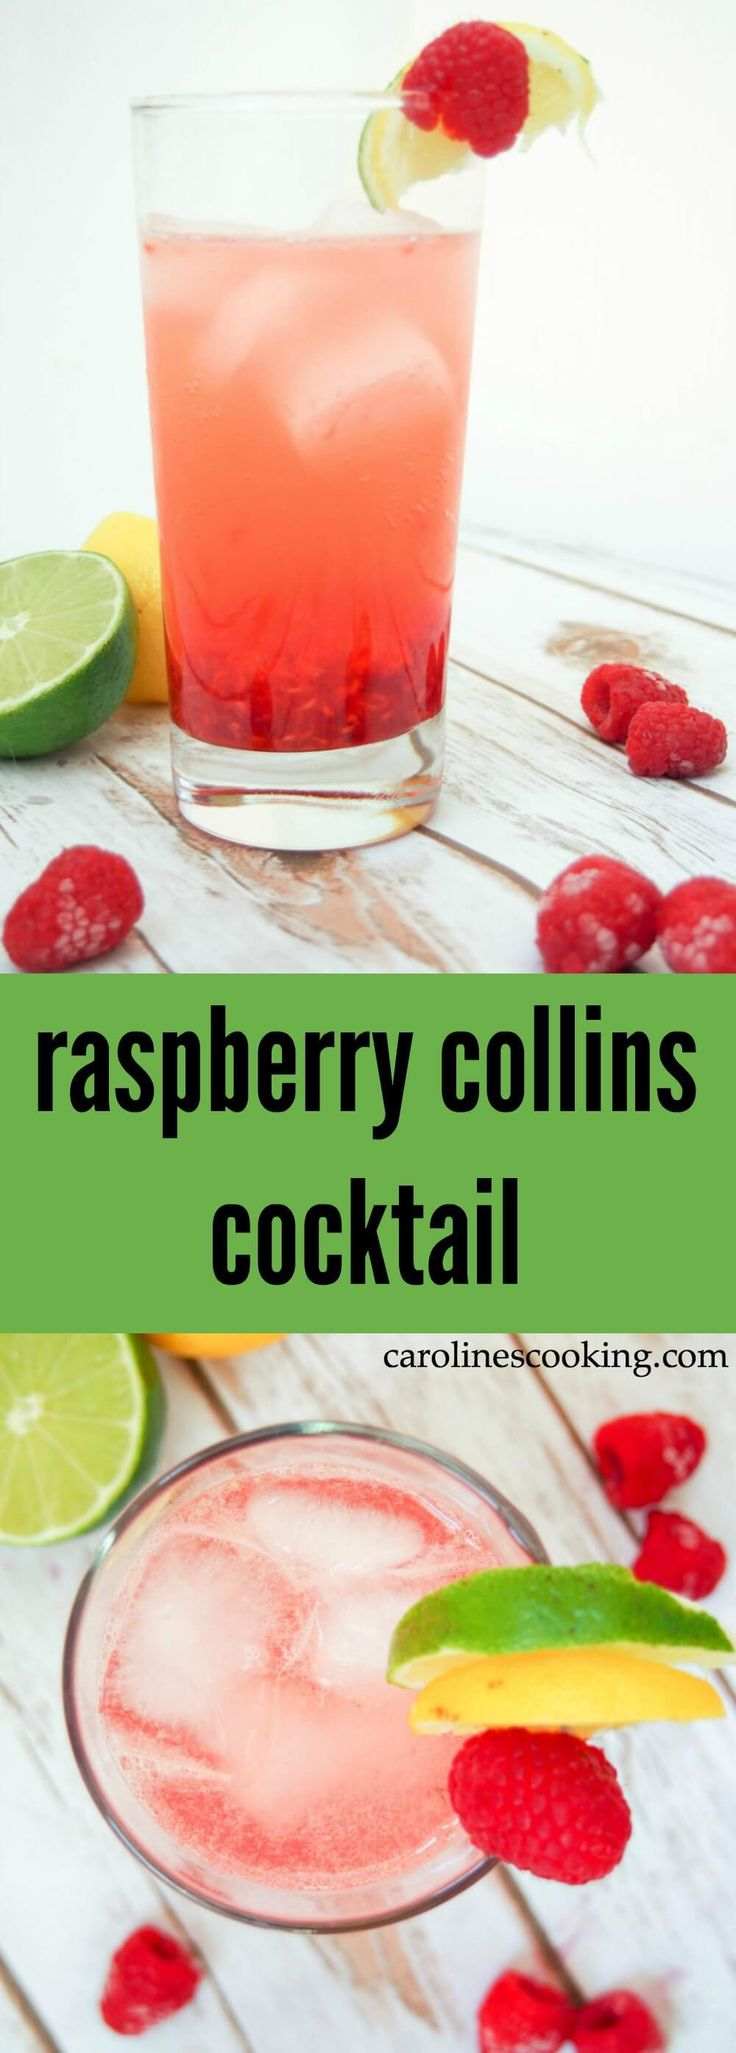 raspberry collins cocktail - a simple combination of gin, raspberries, lemon and soda that's refreshing and fruity. Perfect for summer.